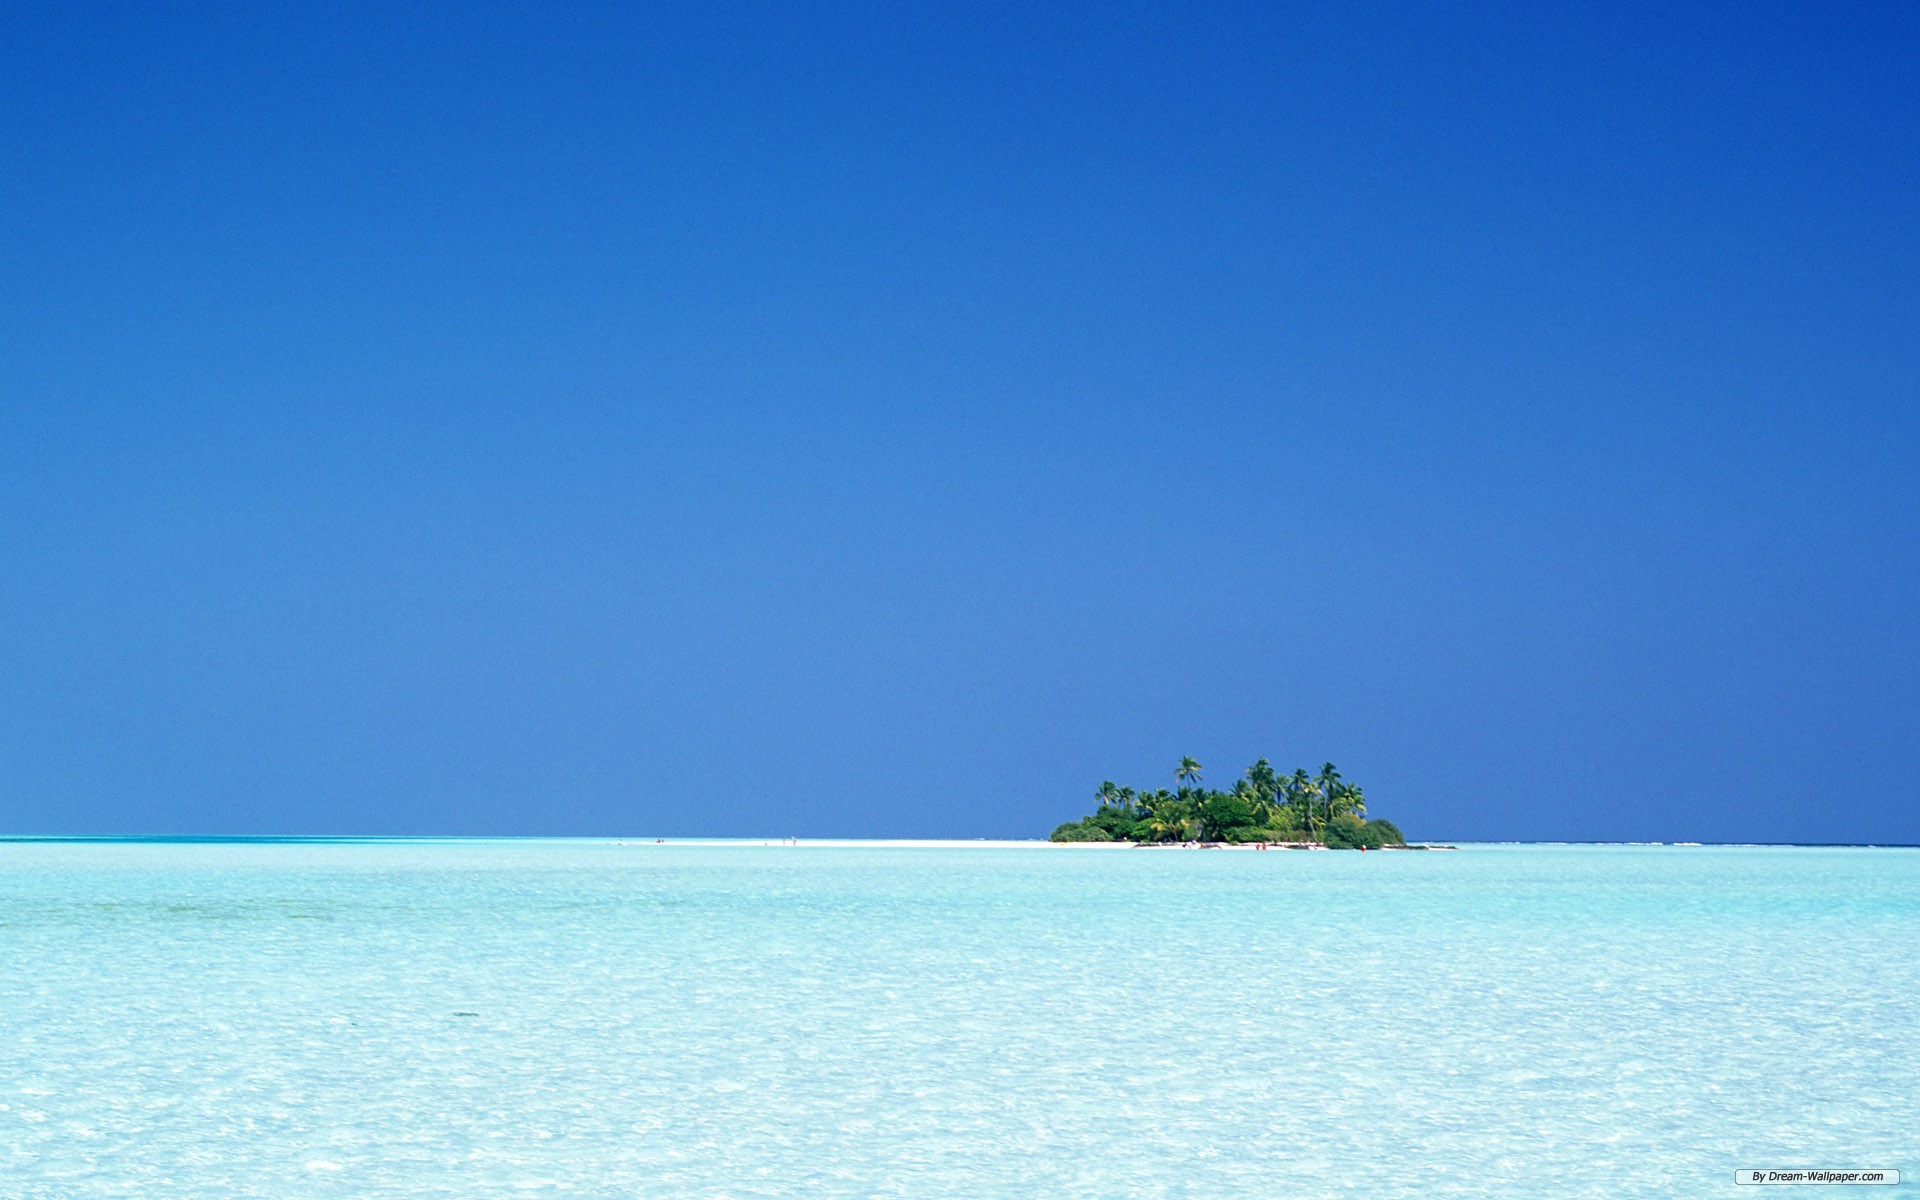 1920x1200 Free Nature wallpaper - Clear Water And Blue Sky 2 wallpaper -   wallpaper - Index